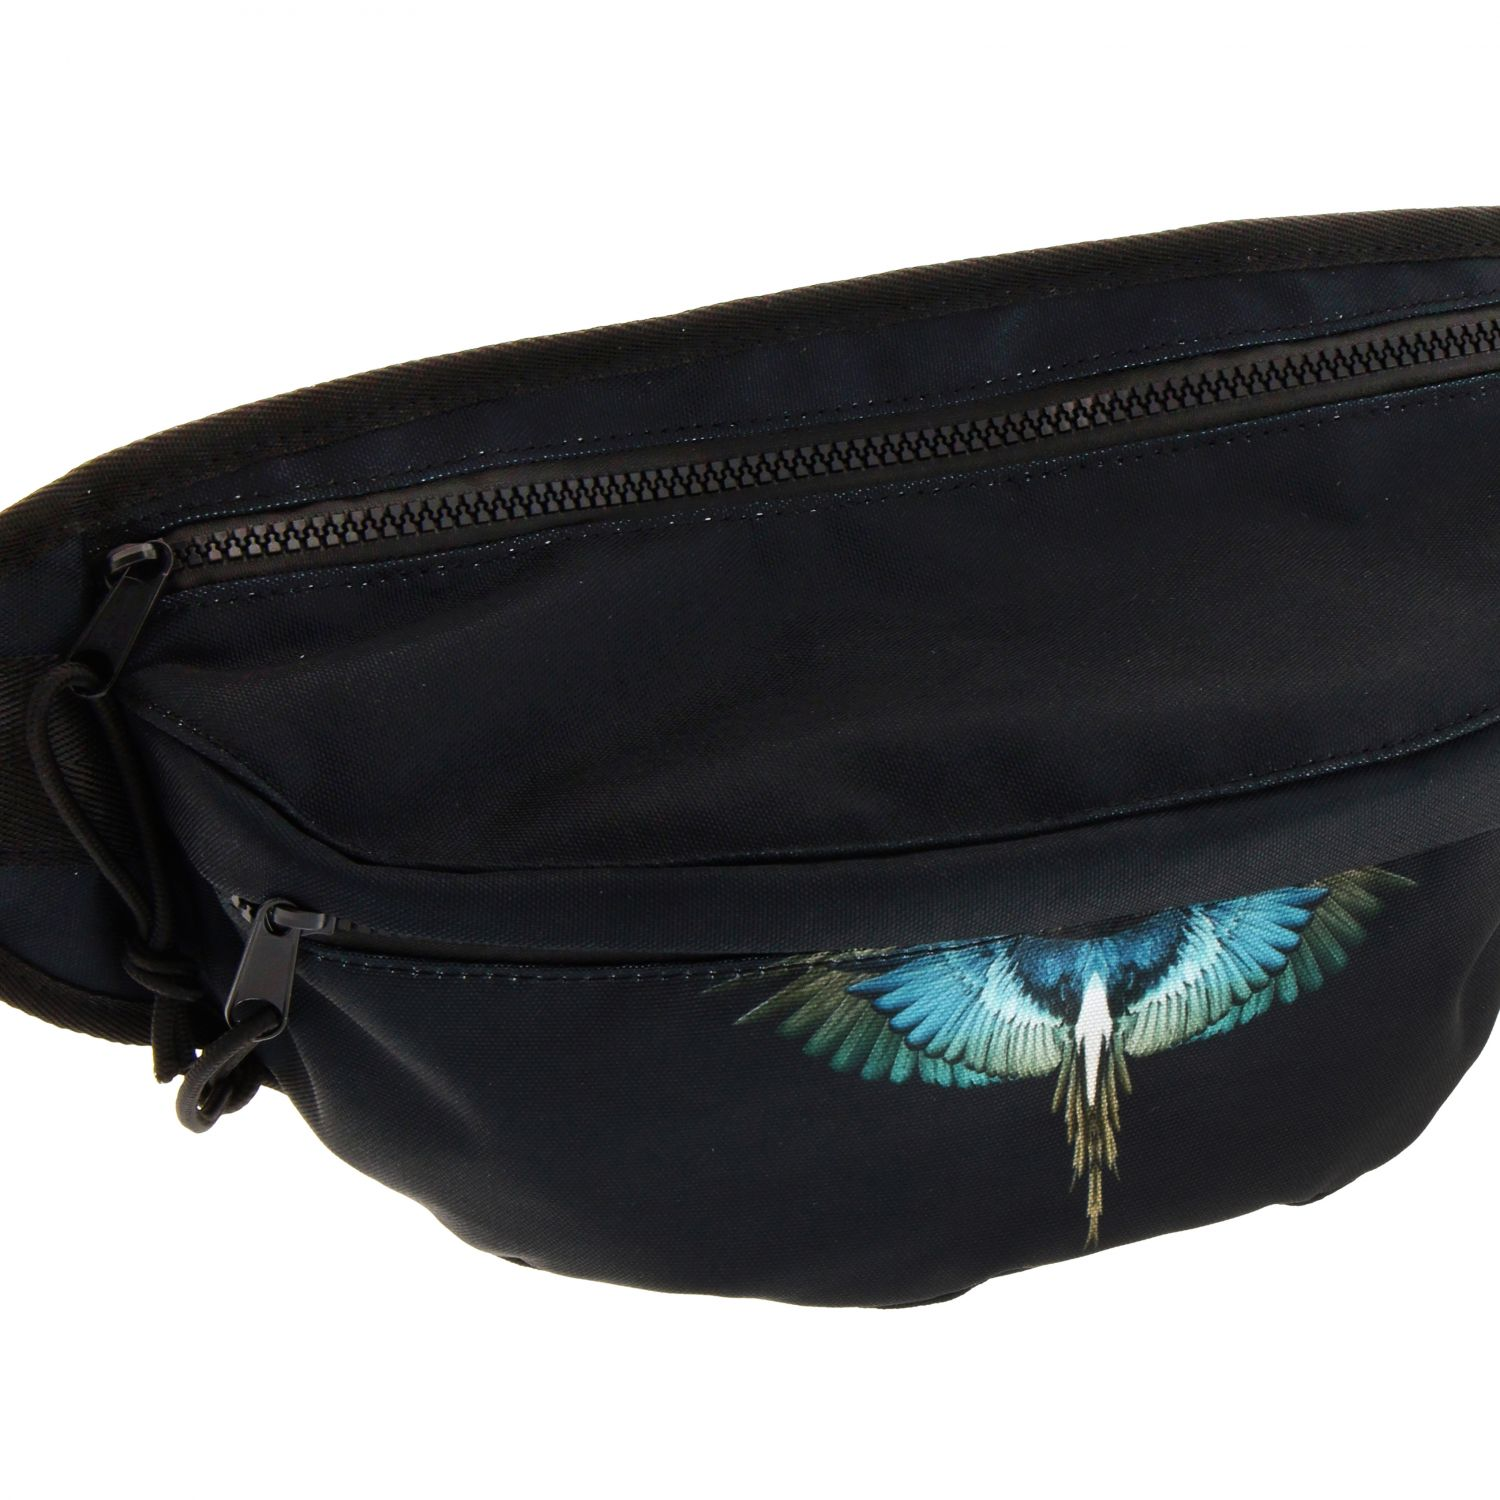 Marcelo Burlon fanny pack in nylon with feather print black 3